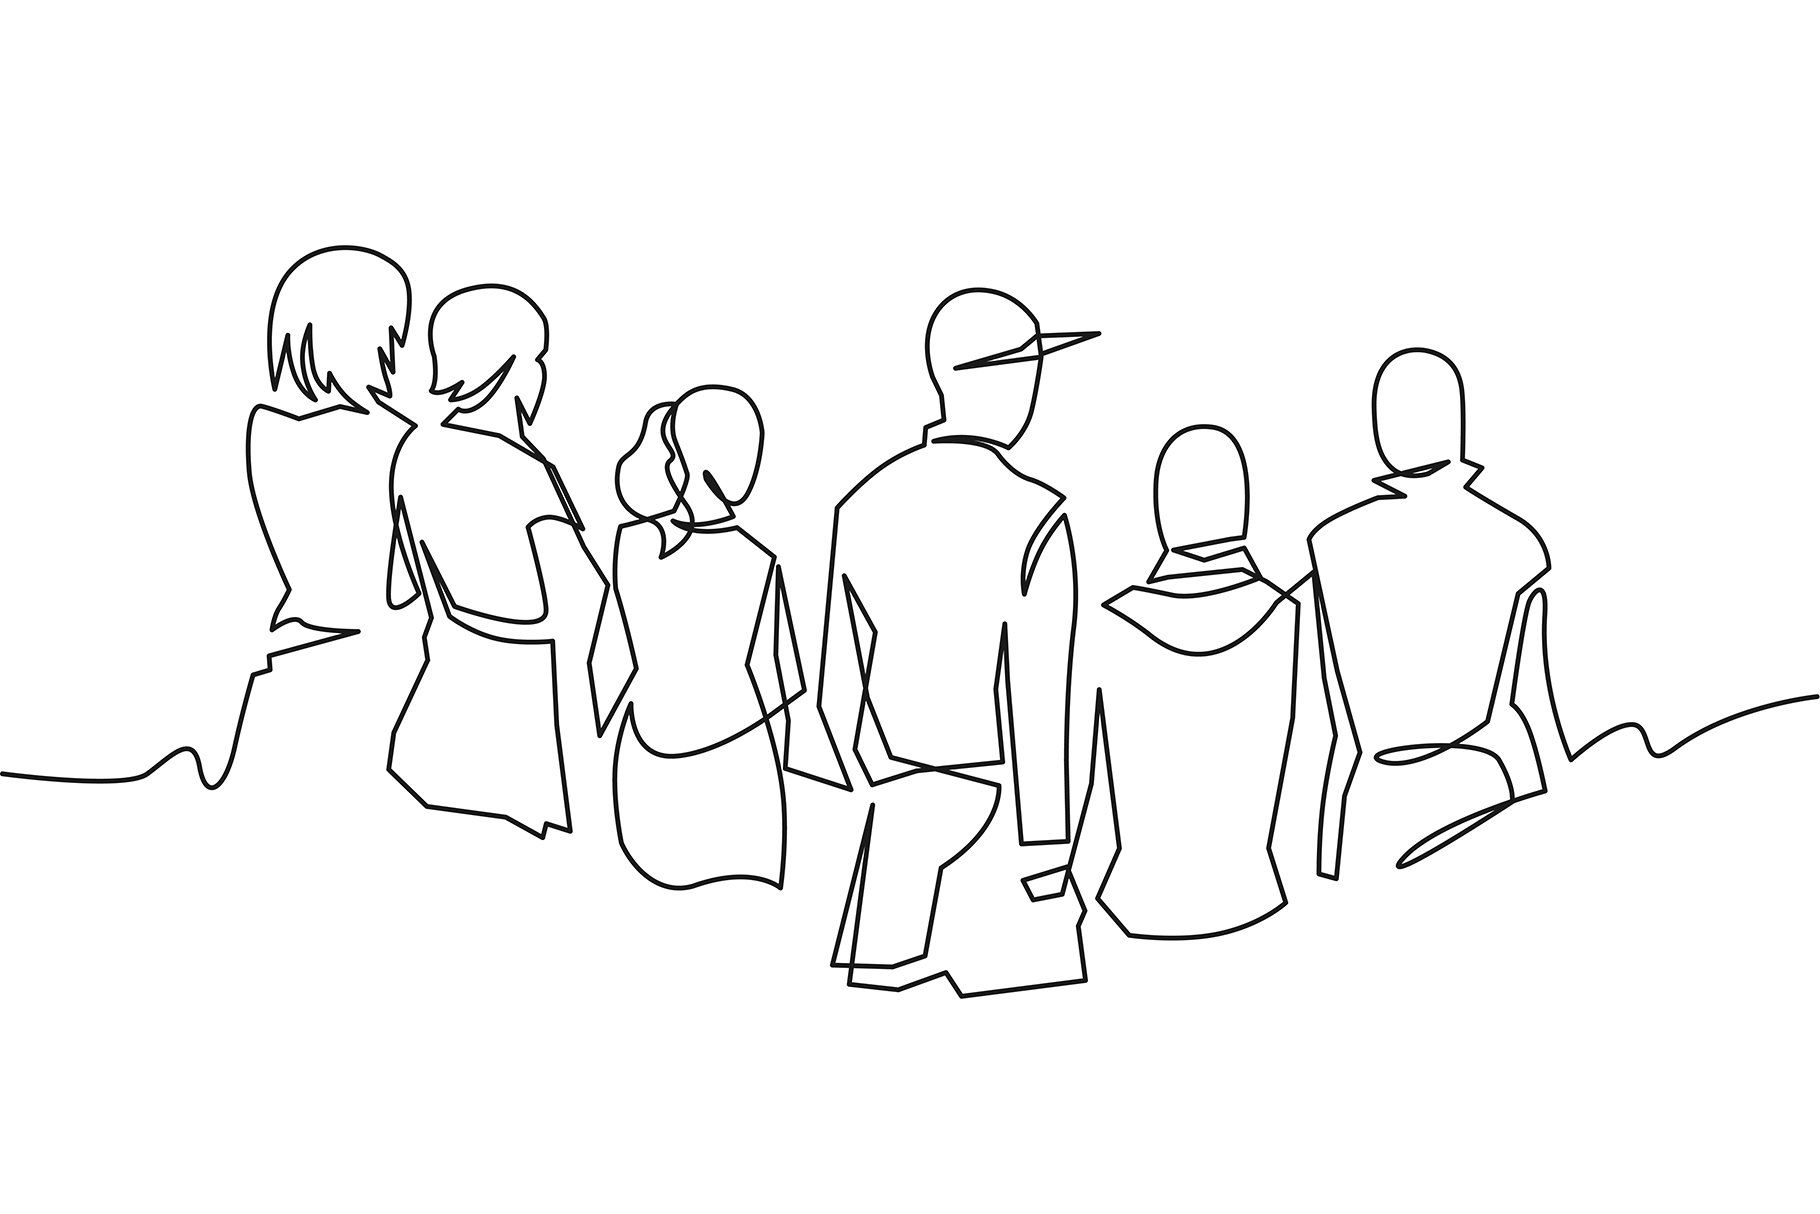 Group Of People Continuous One Line Friends Sketch Line Art Drawings Abstract Line Art